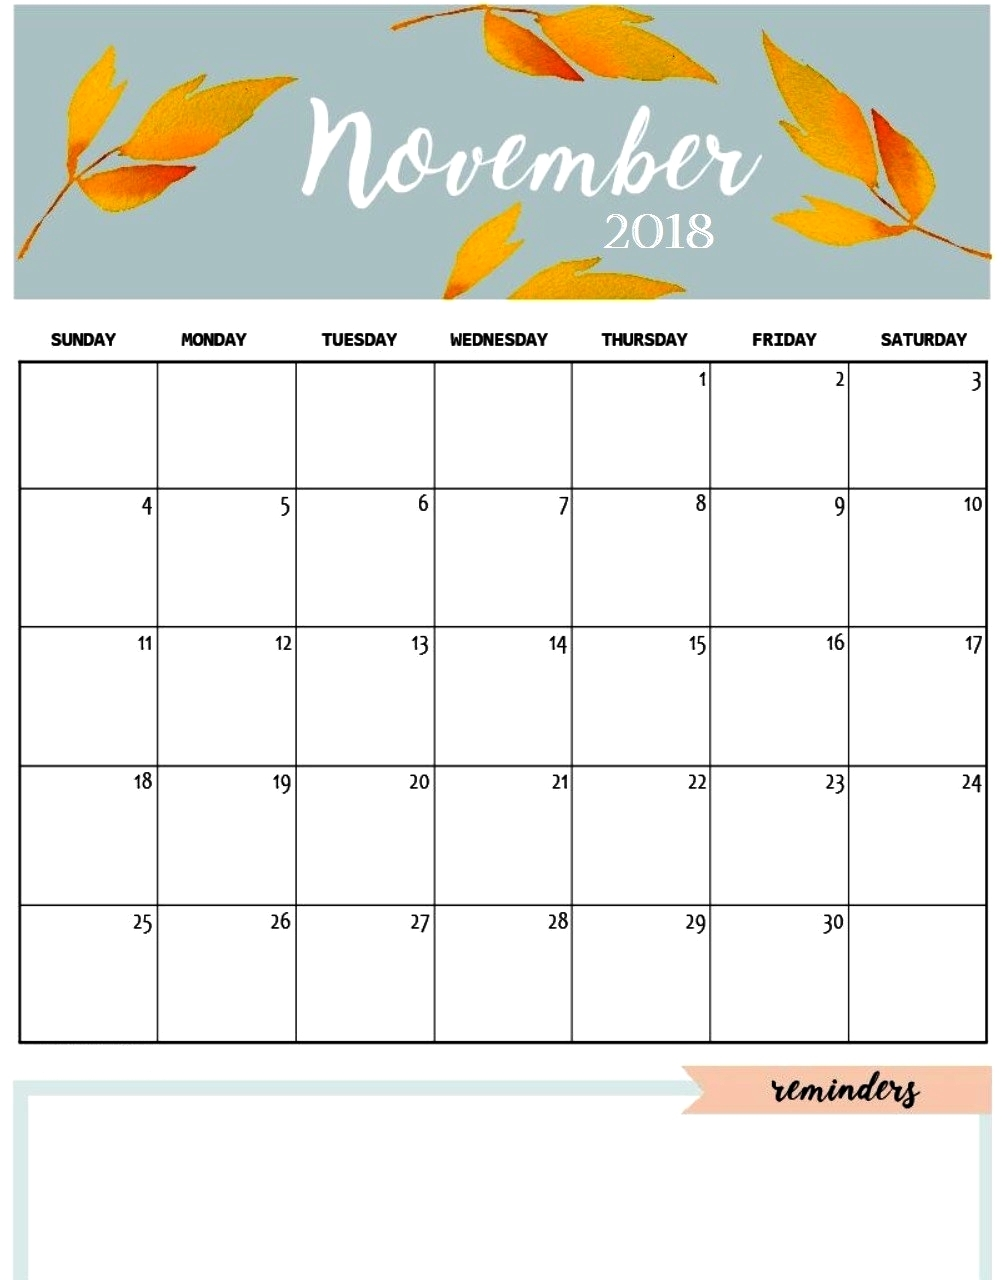 editable november 2018 calendar cute templates archives opindian Editable November 2018 Calendar erdferdf